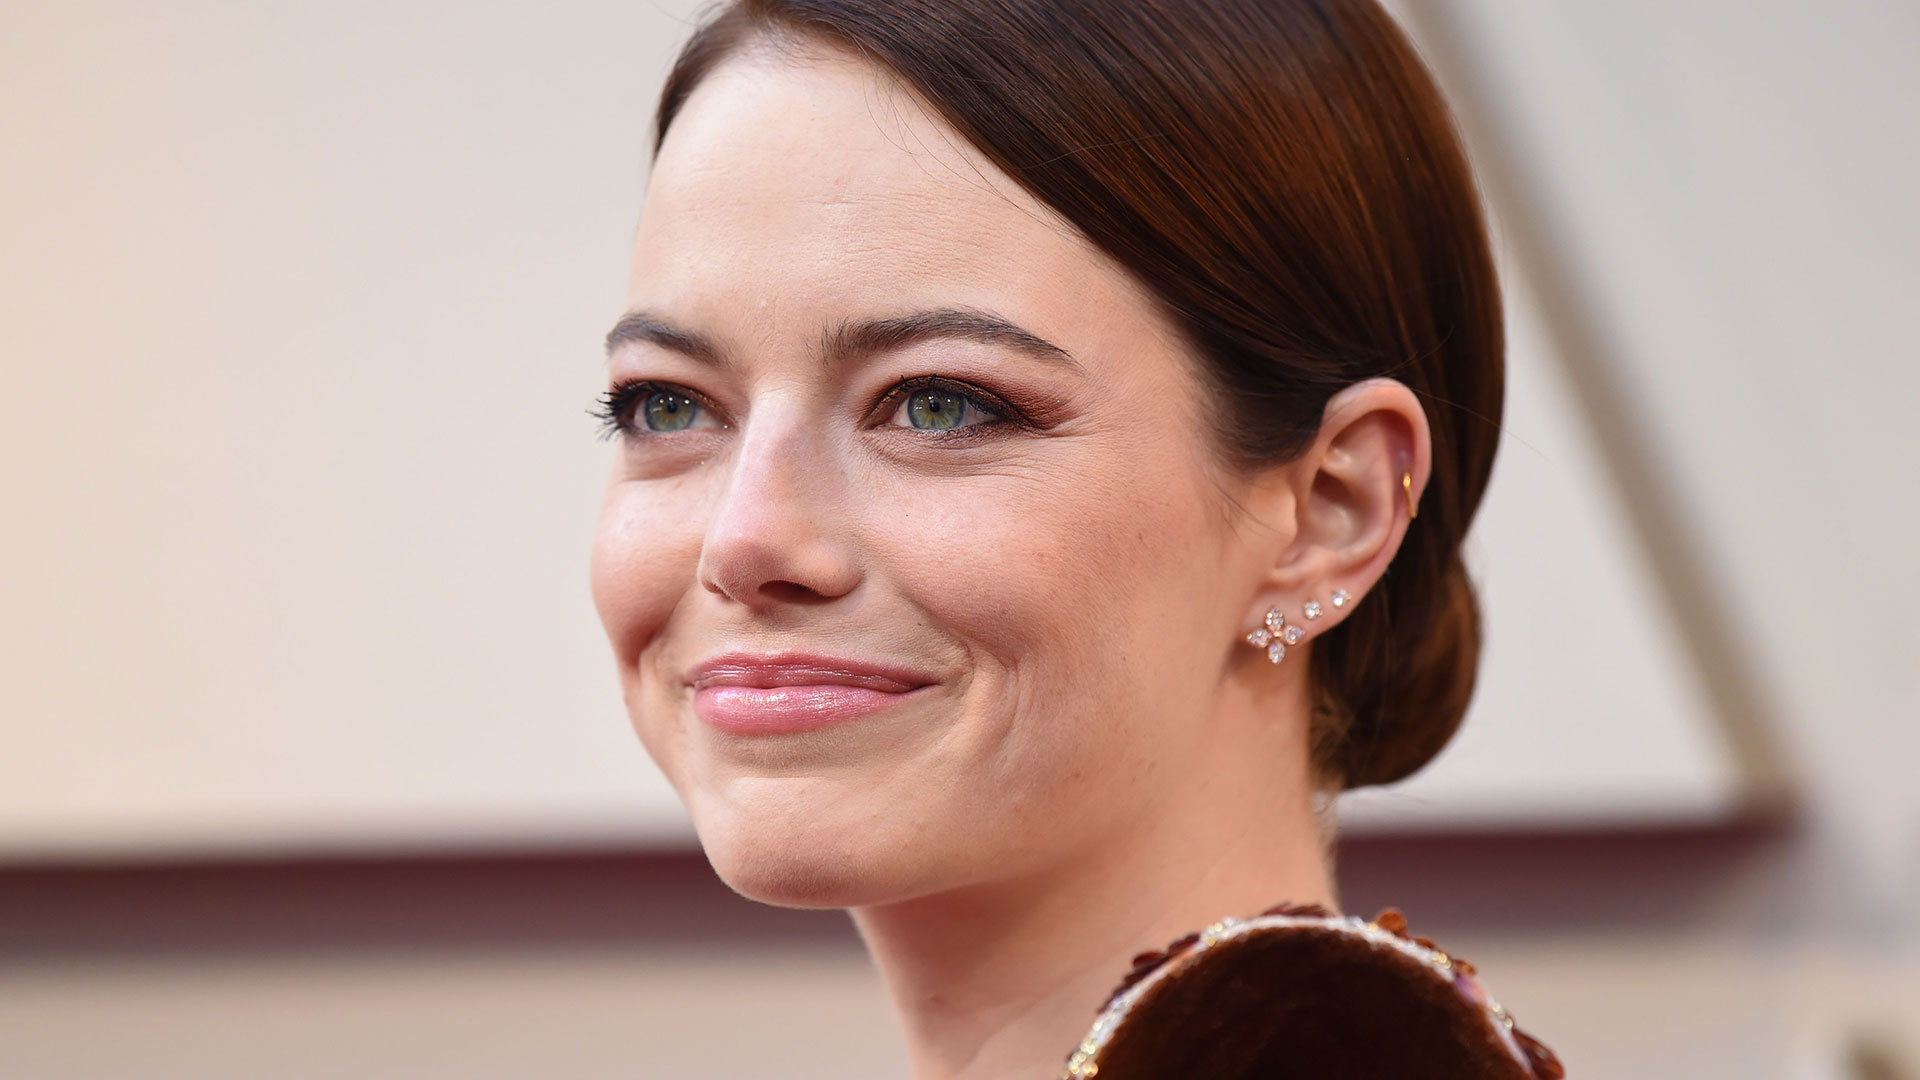 Emma Stone's Home Embraces Wallpapers & Lots of Color – SheKnows